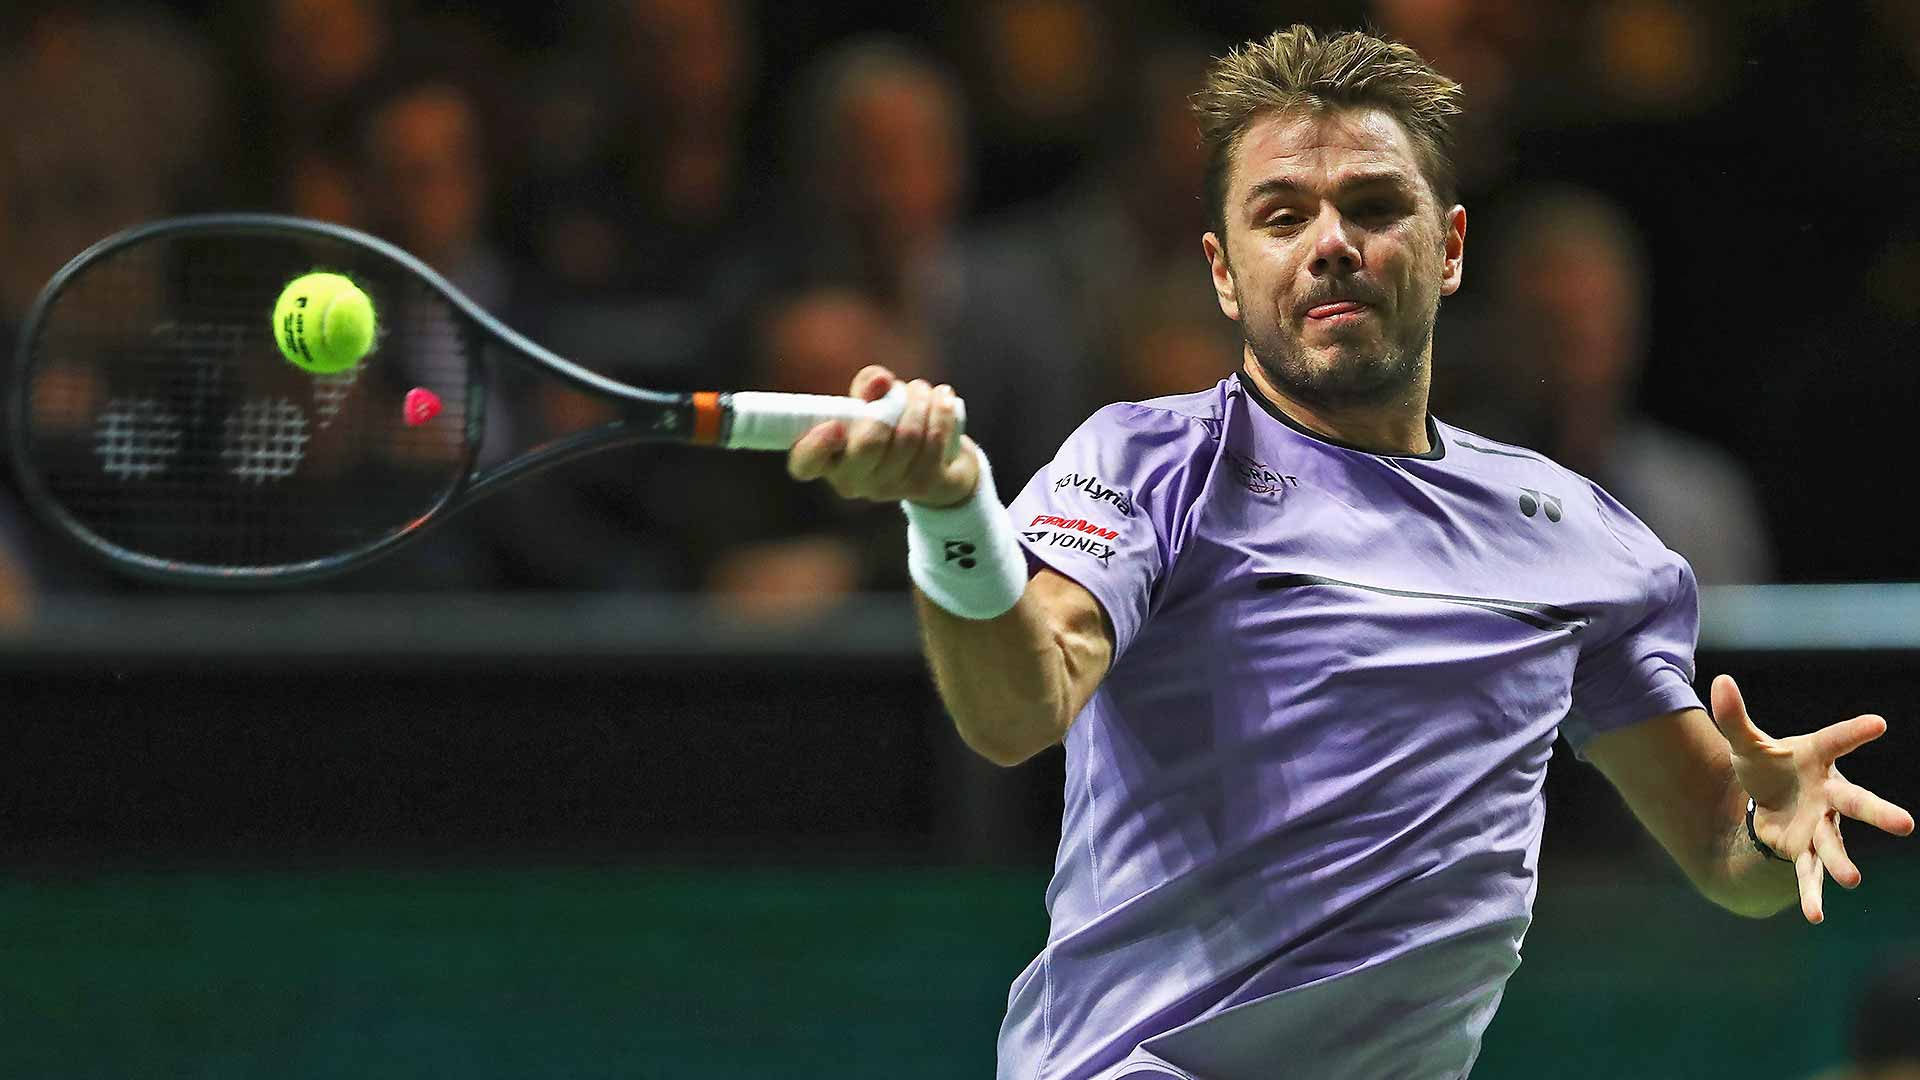 Stan Wawrinka improves to 5-3 in his FedEx ATP Head2Head series against Feliciano Lopez.